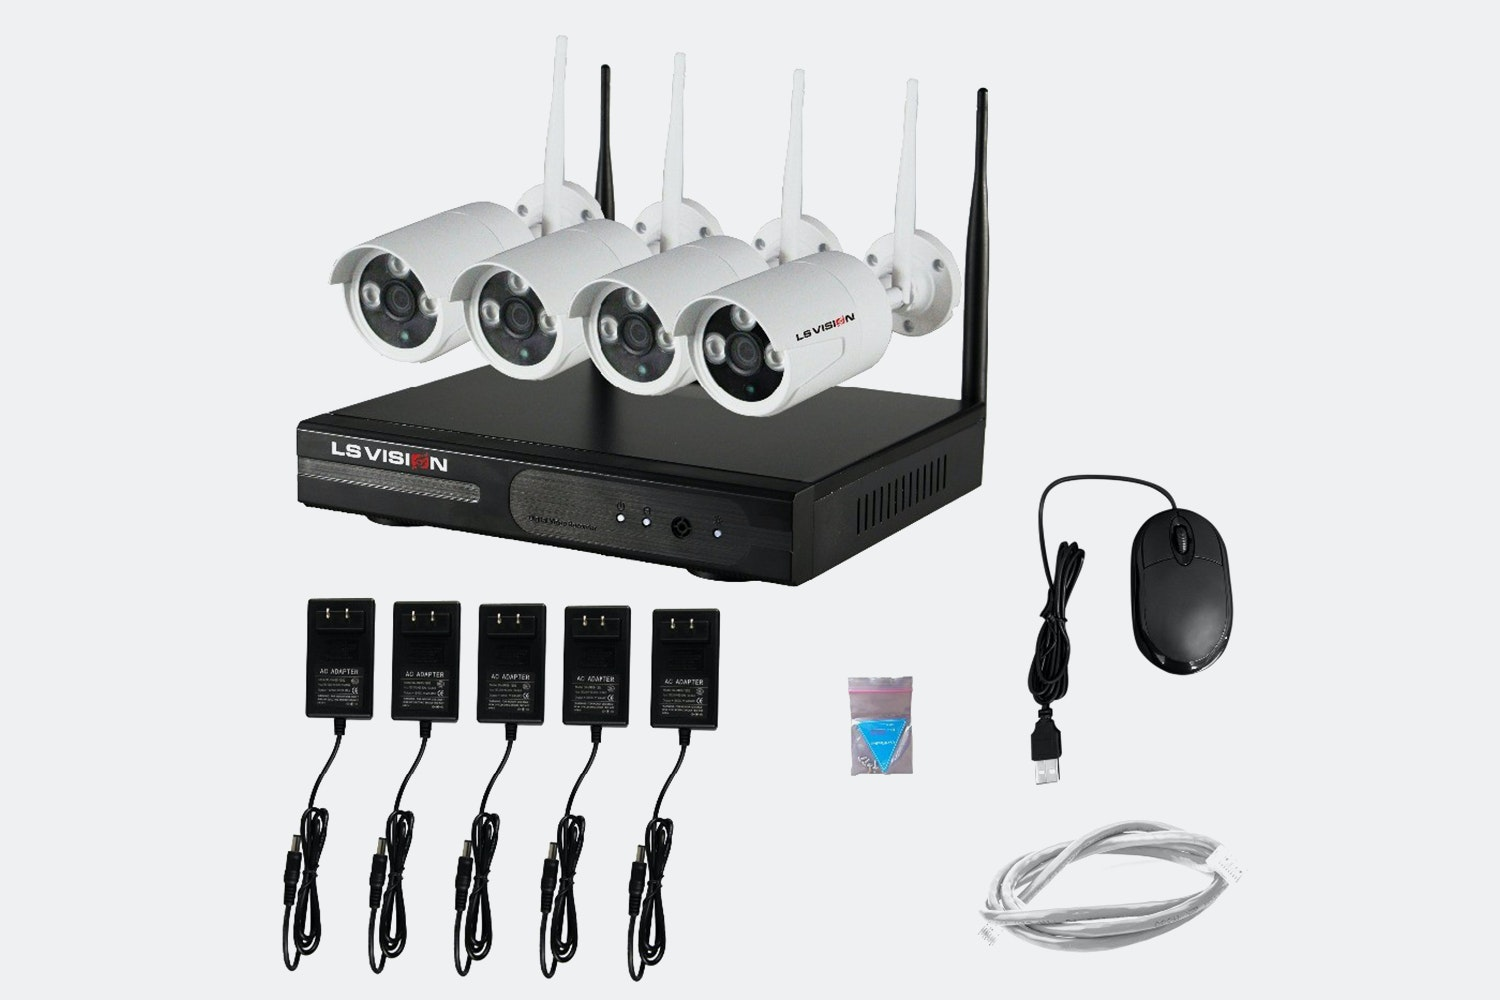 LS Vision 960P Wi-Fi Surveillance Video Systems